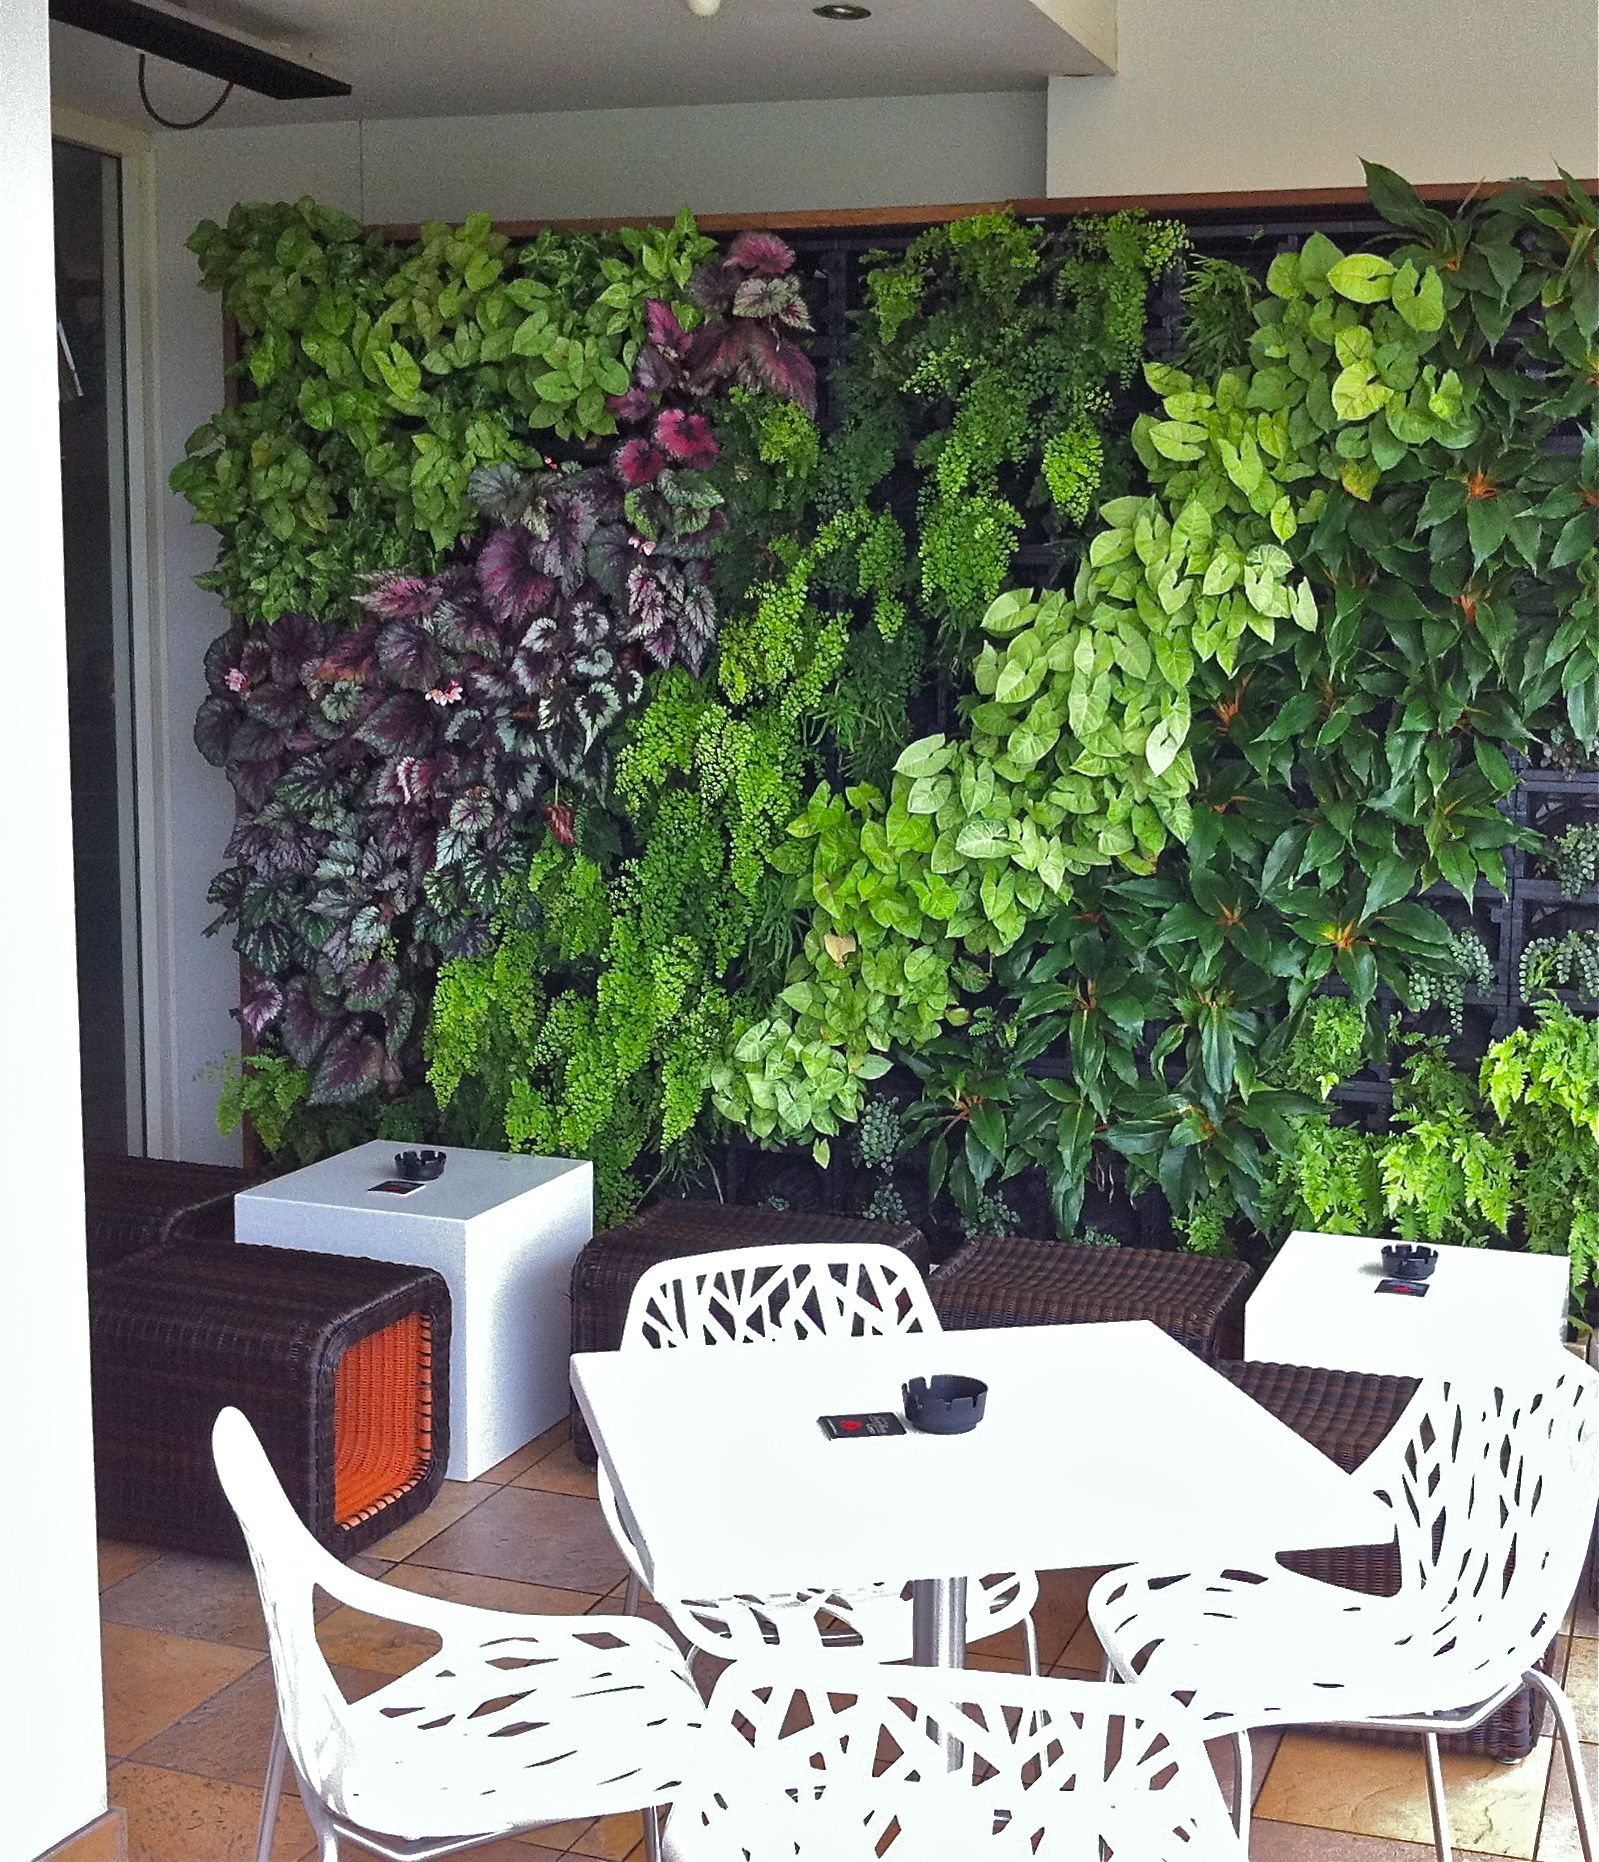 Green wall garden green roof garden vertical garden for Garden designs sydney